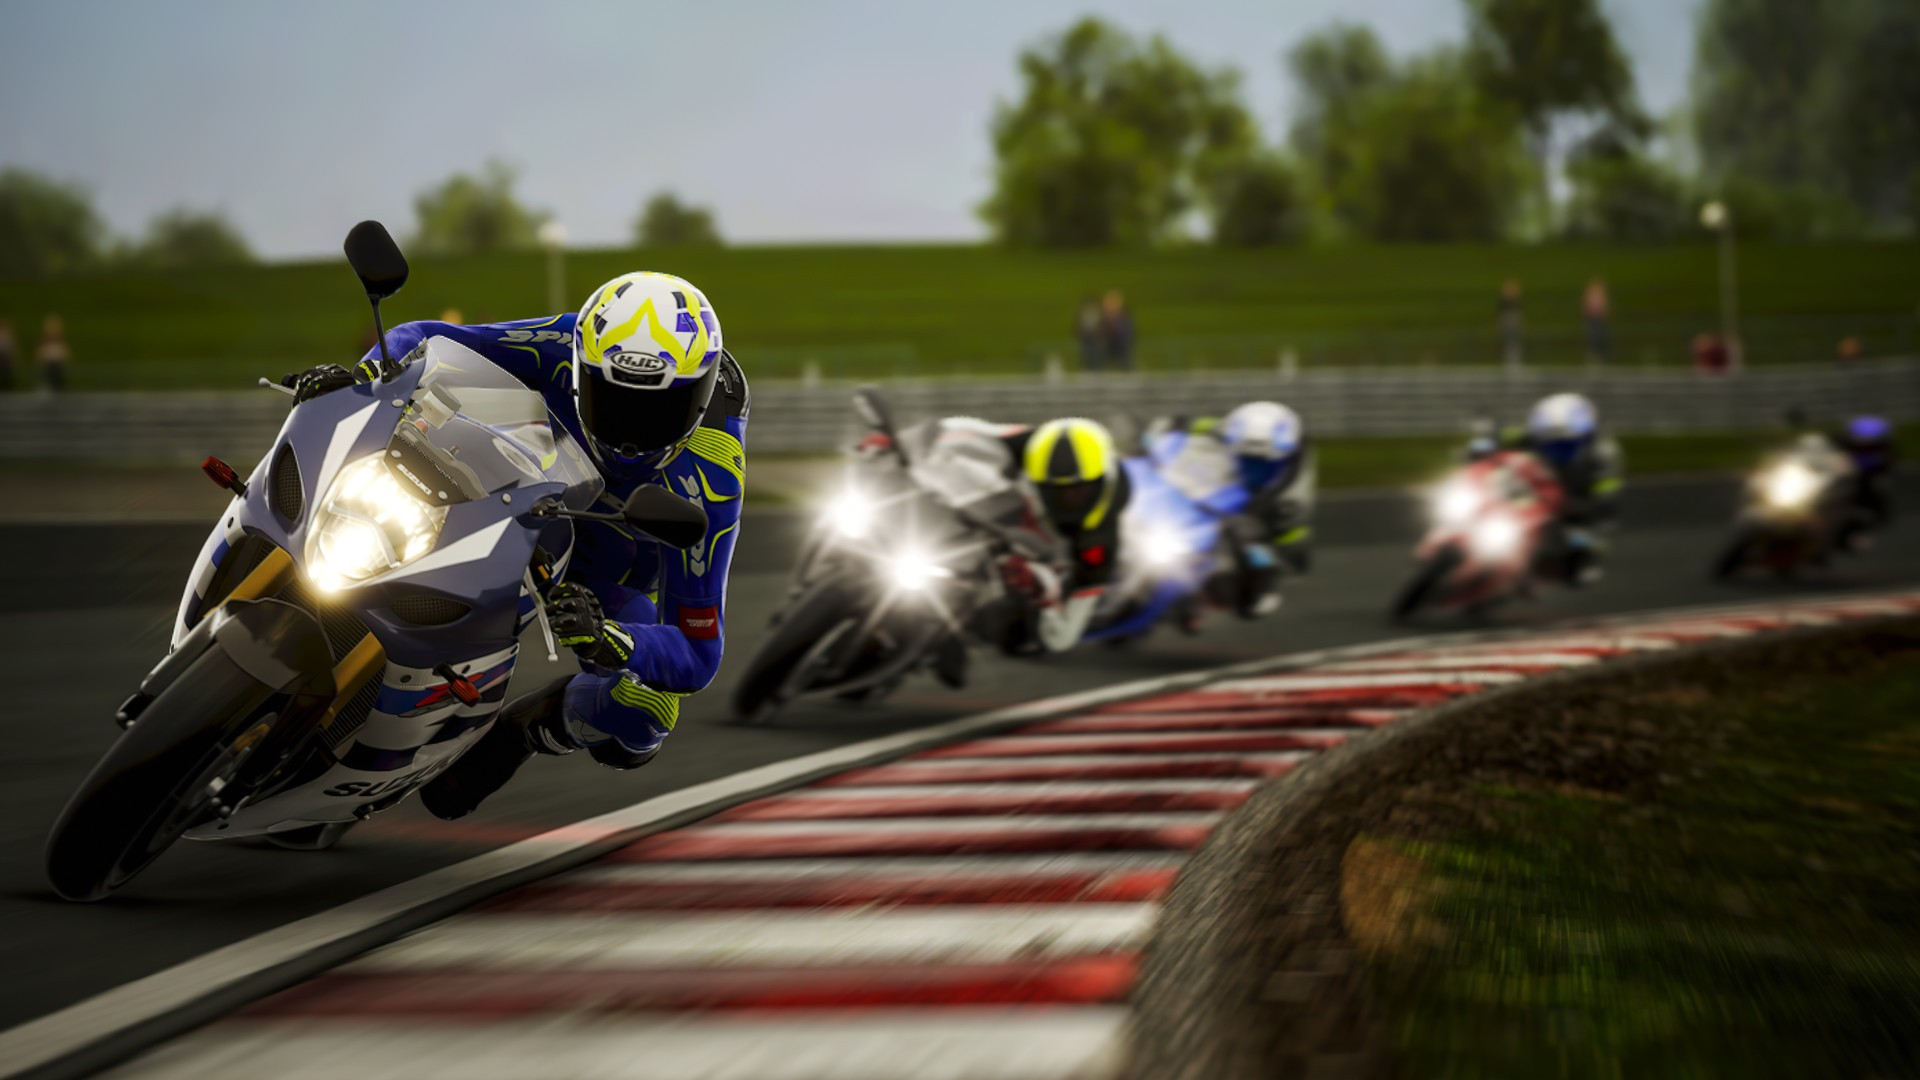 Ride 4 rides on to PC and other platforms alongside a new trailer